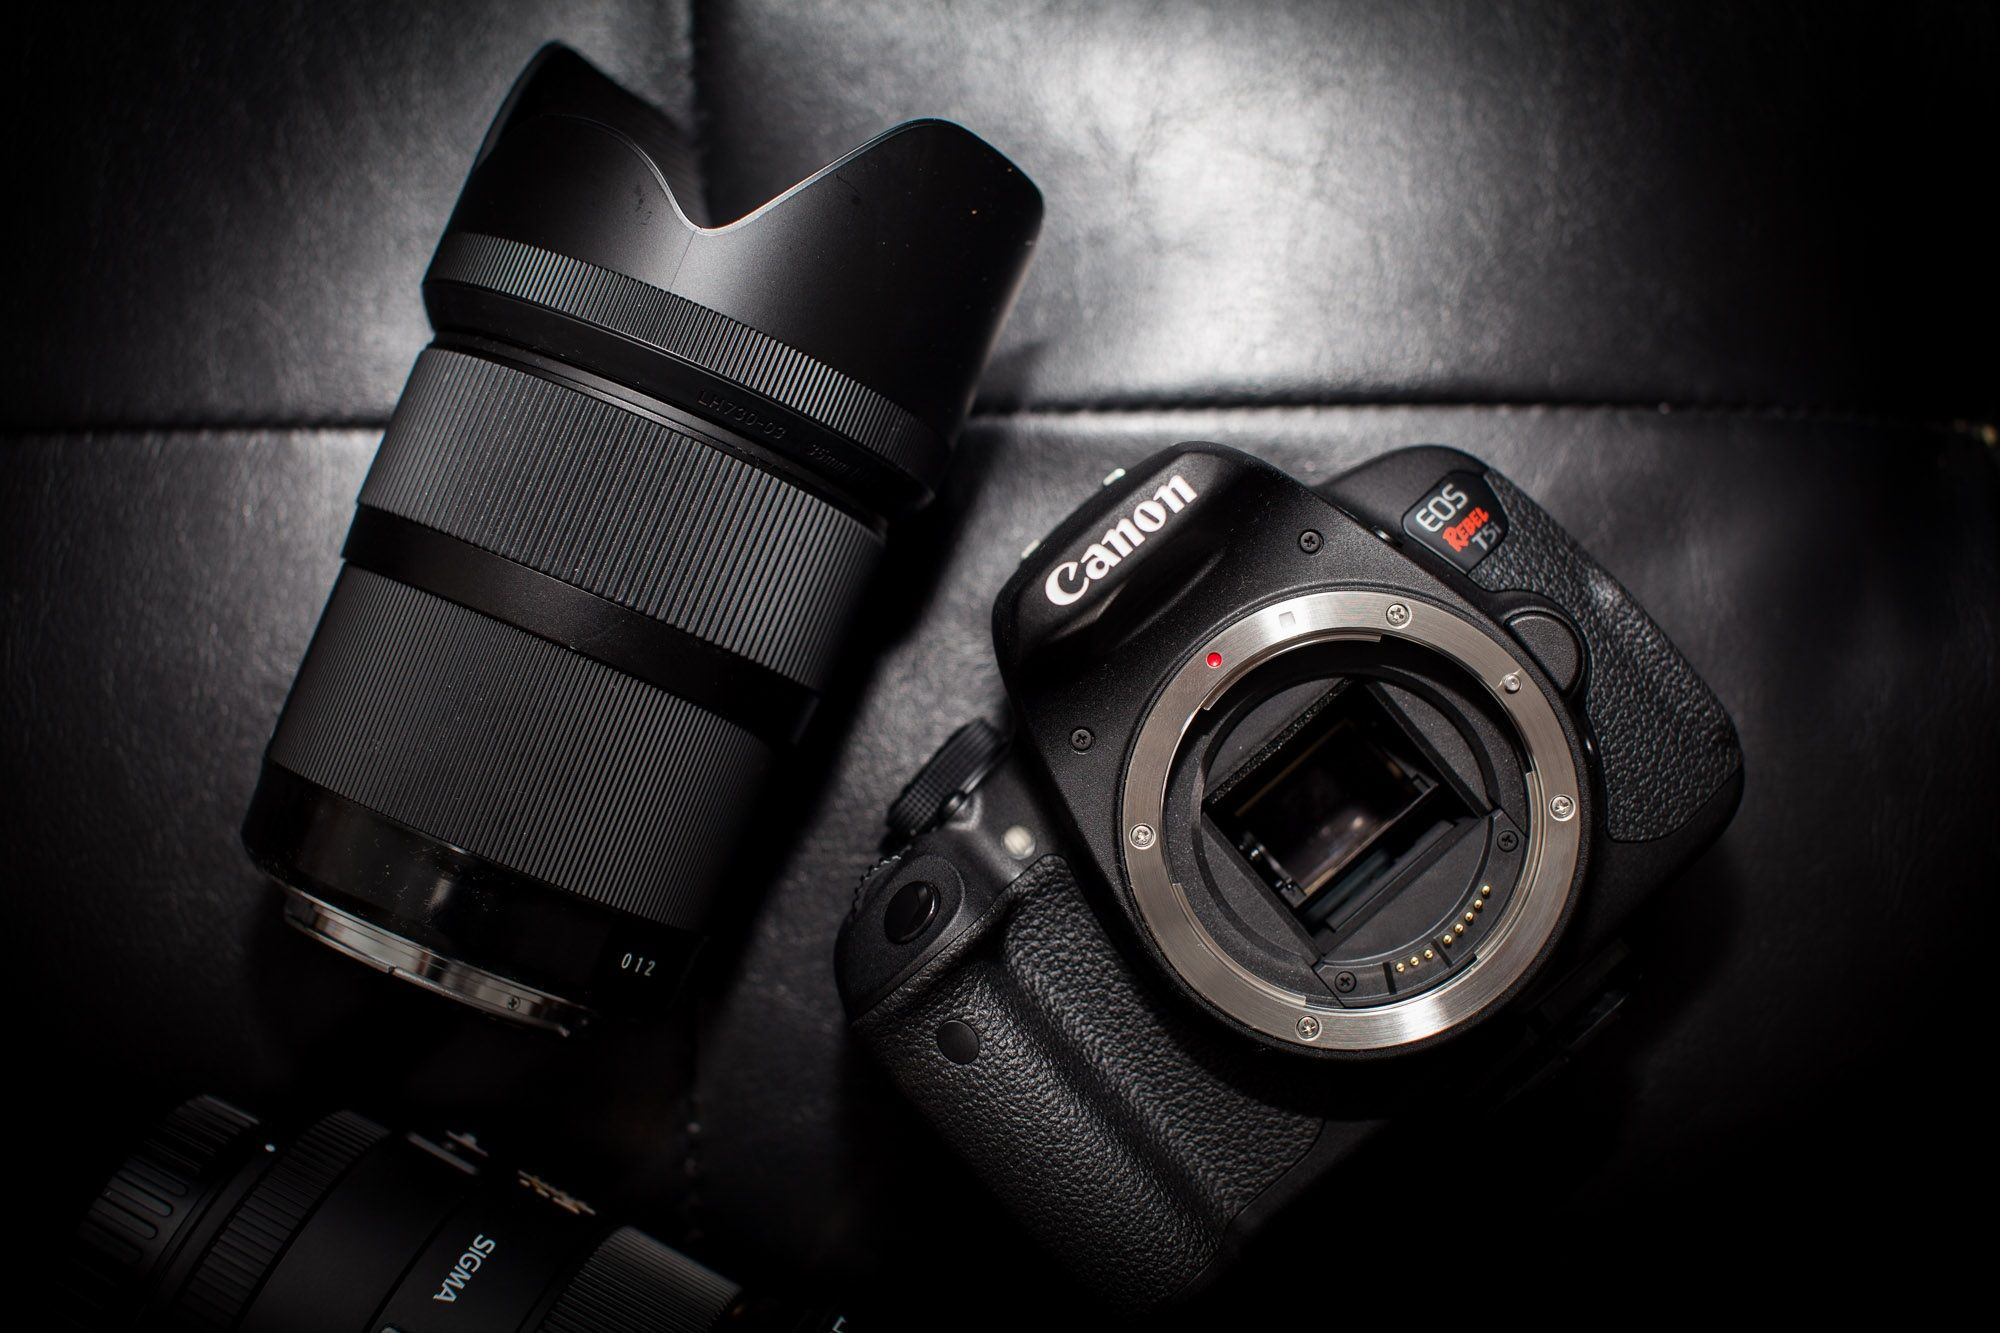 Canon Wallpaper Dslr Canon Dslr Hd Wallpapers Pinterest Canon